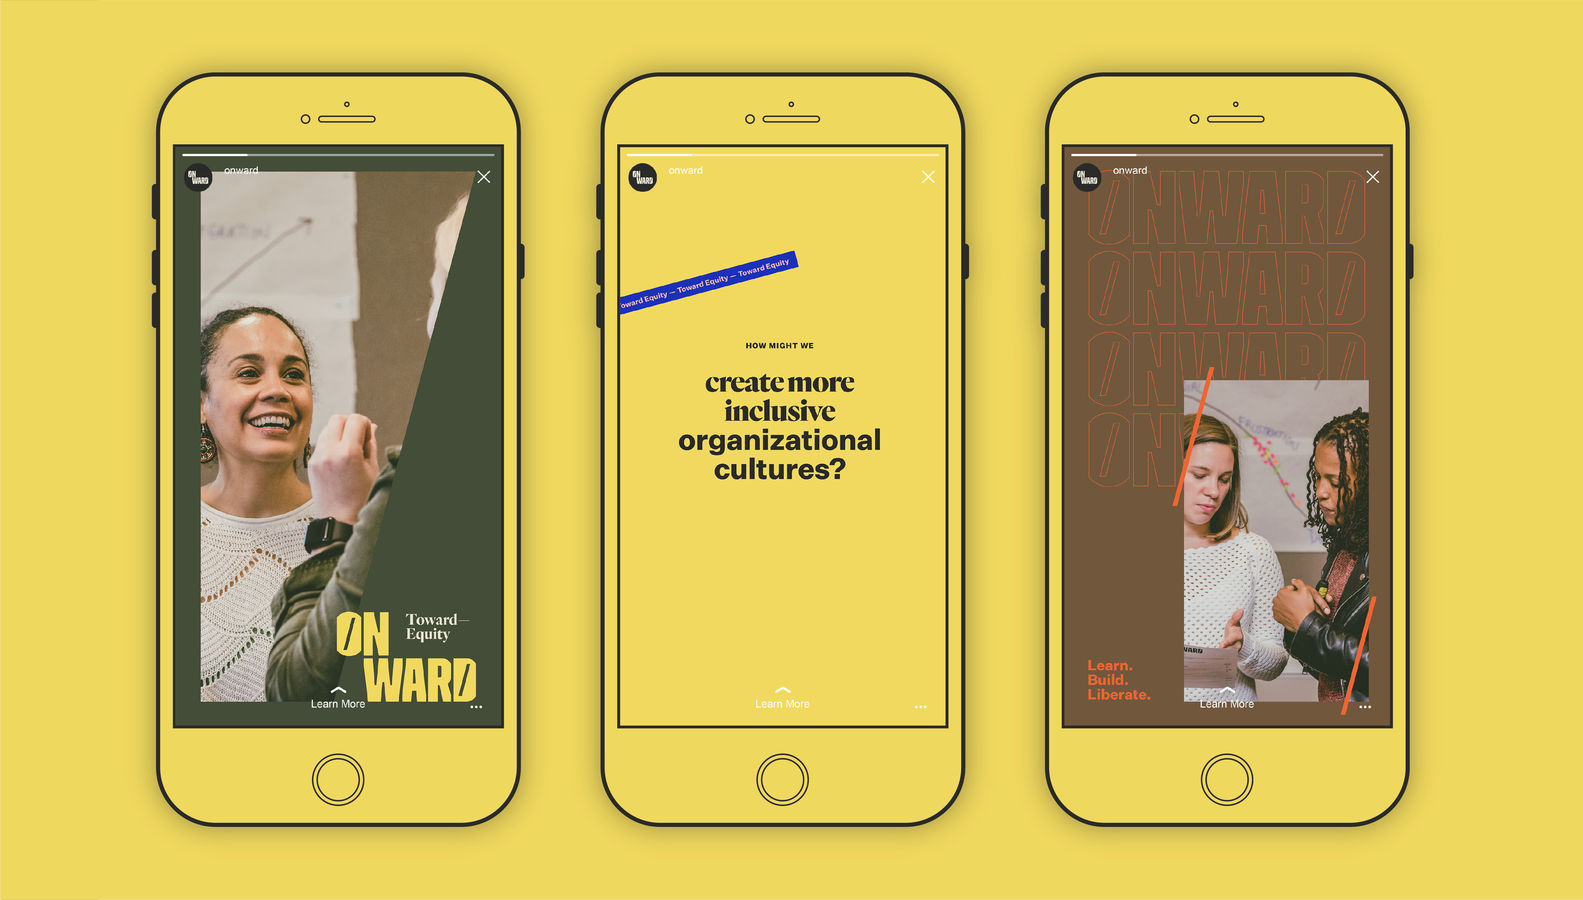 Example of yellow instagram layout mockup for Onward